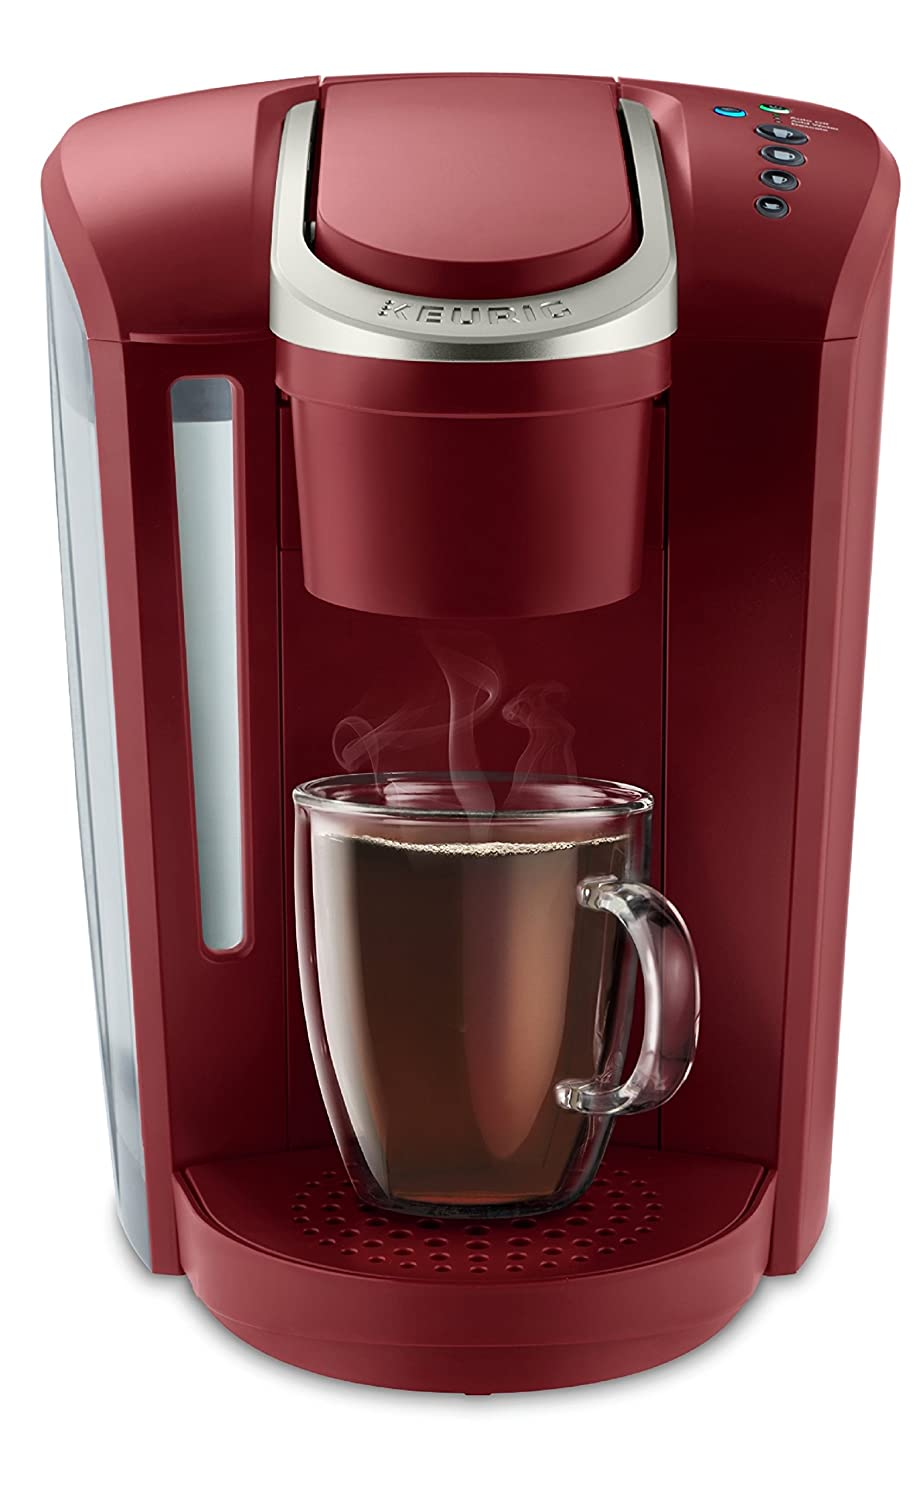 Keurig K-Select Single Serve K-Cup Pod Coffee Maker, With Strength Control and Hot Water On Demand, Vintage Red